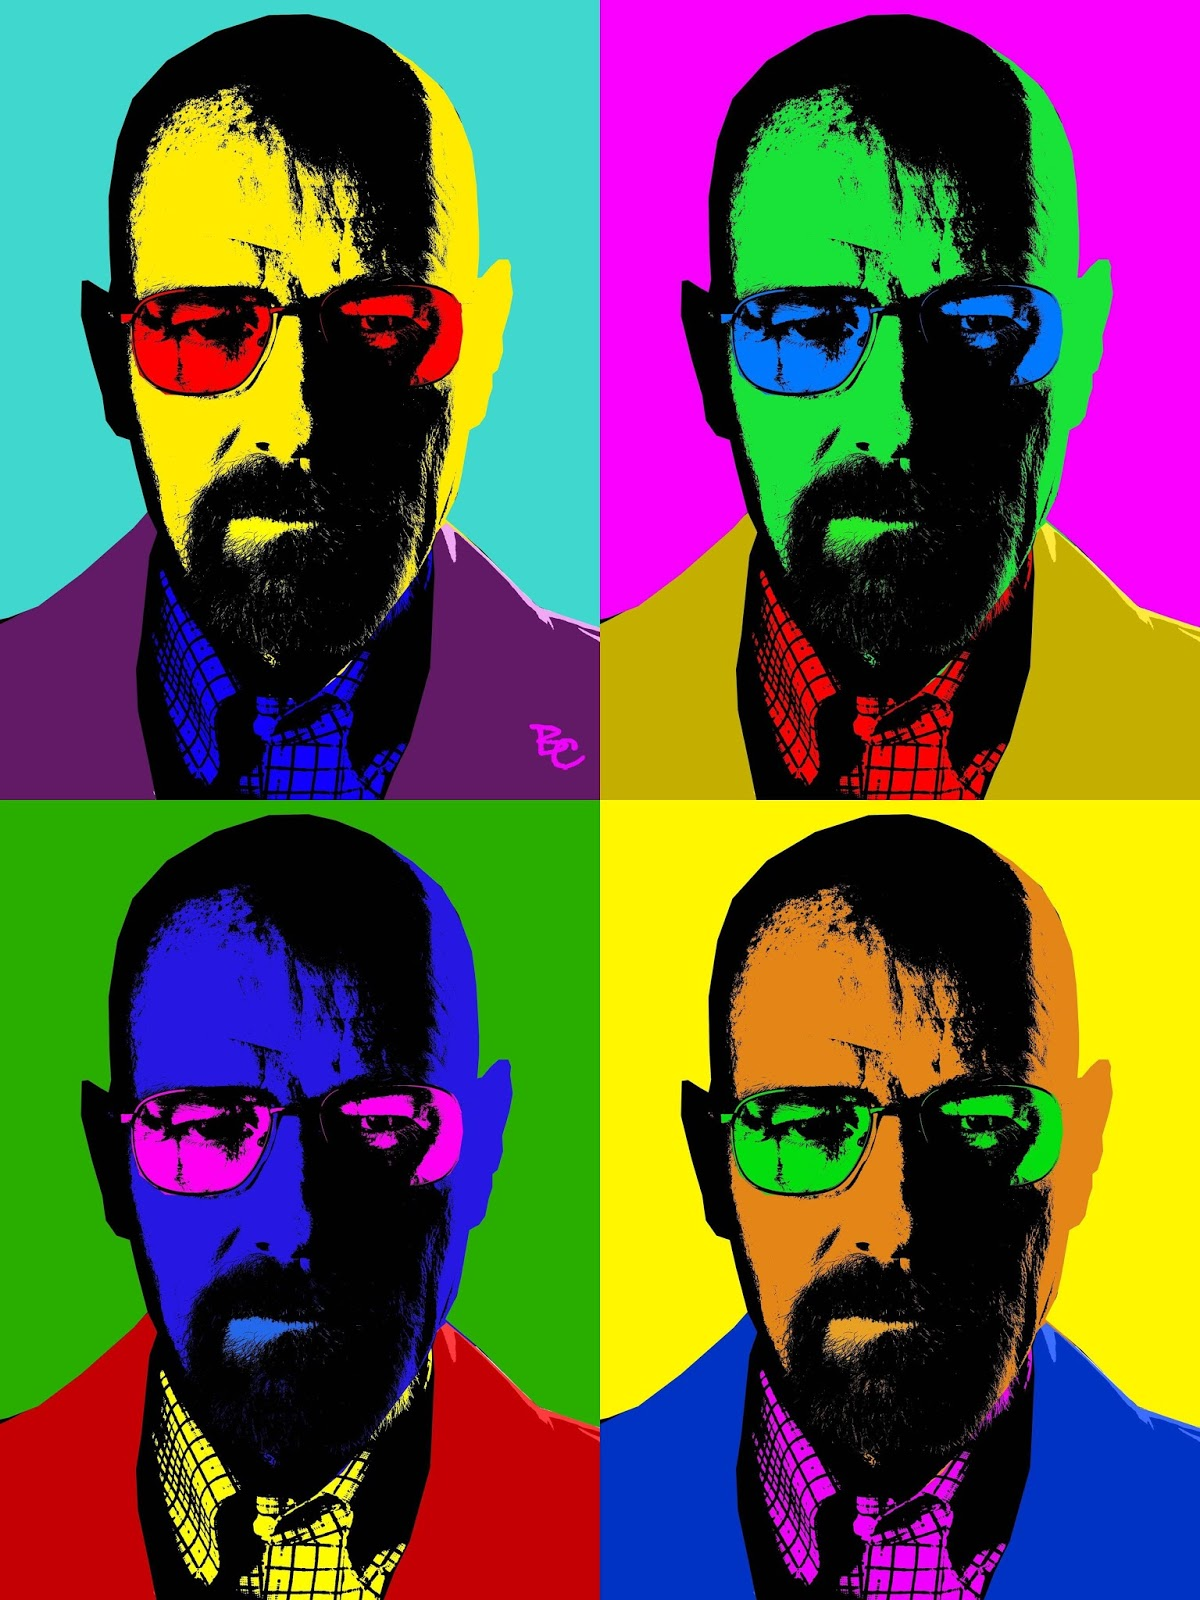 Digital Self Portrait Or Pop Art Portraits